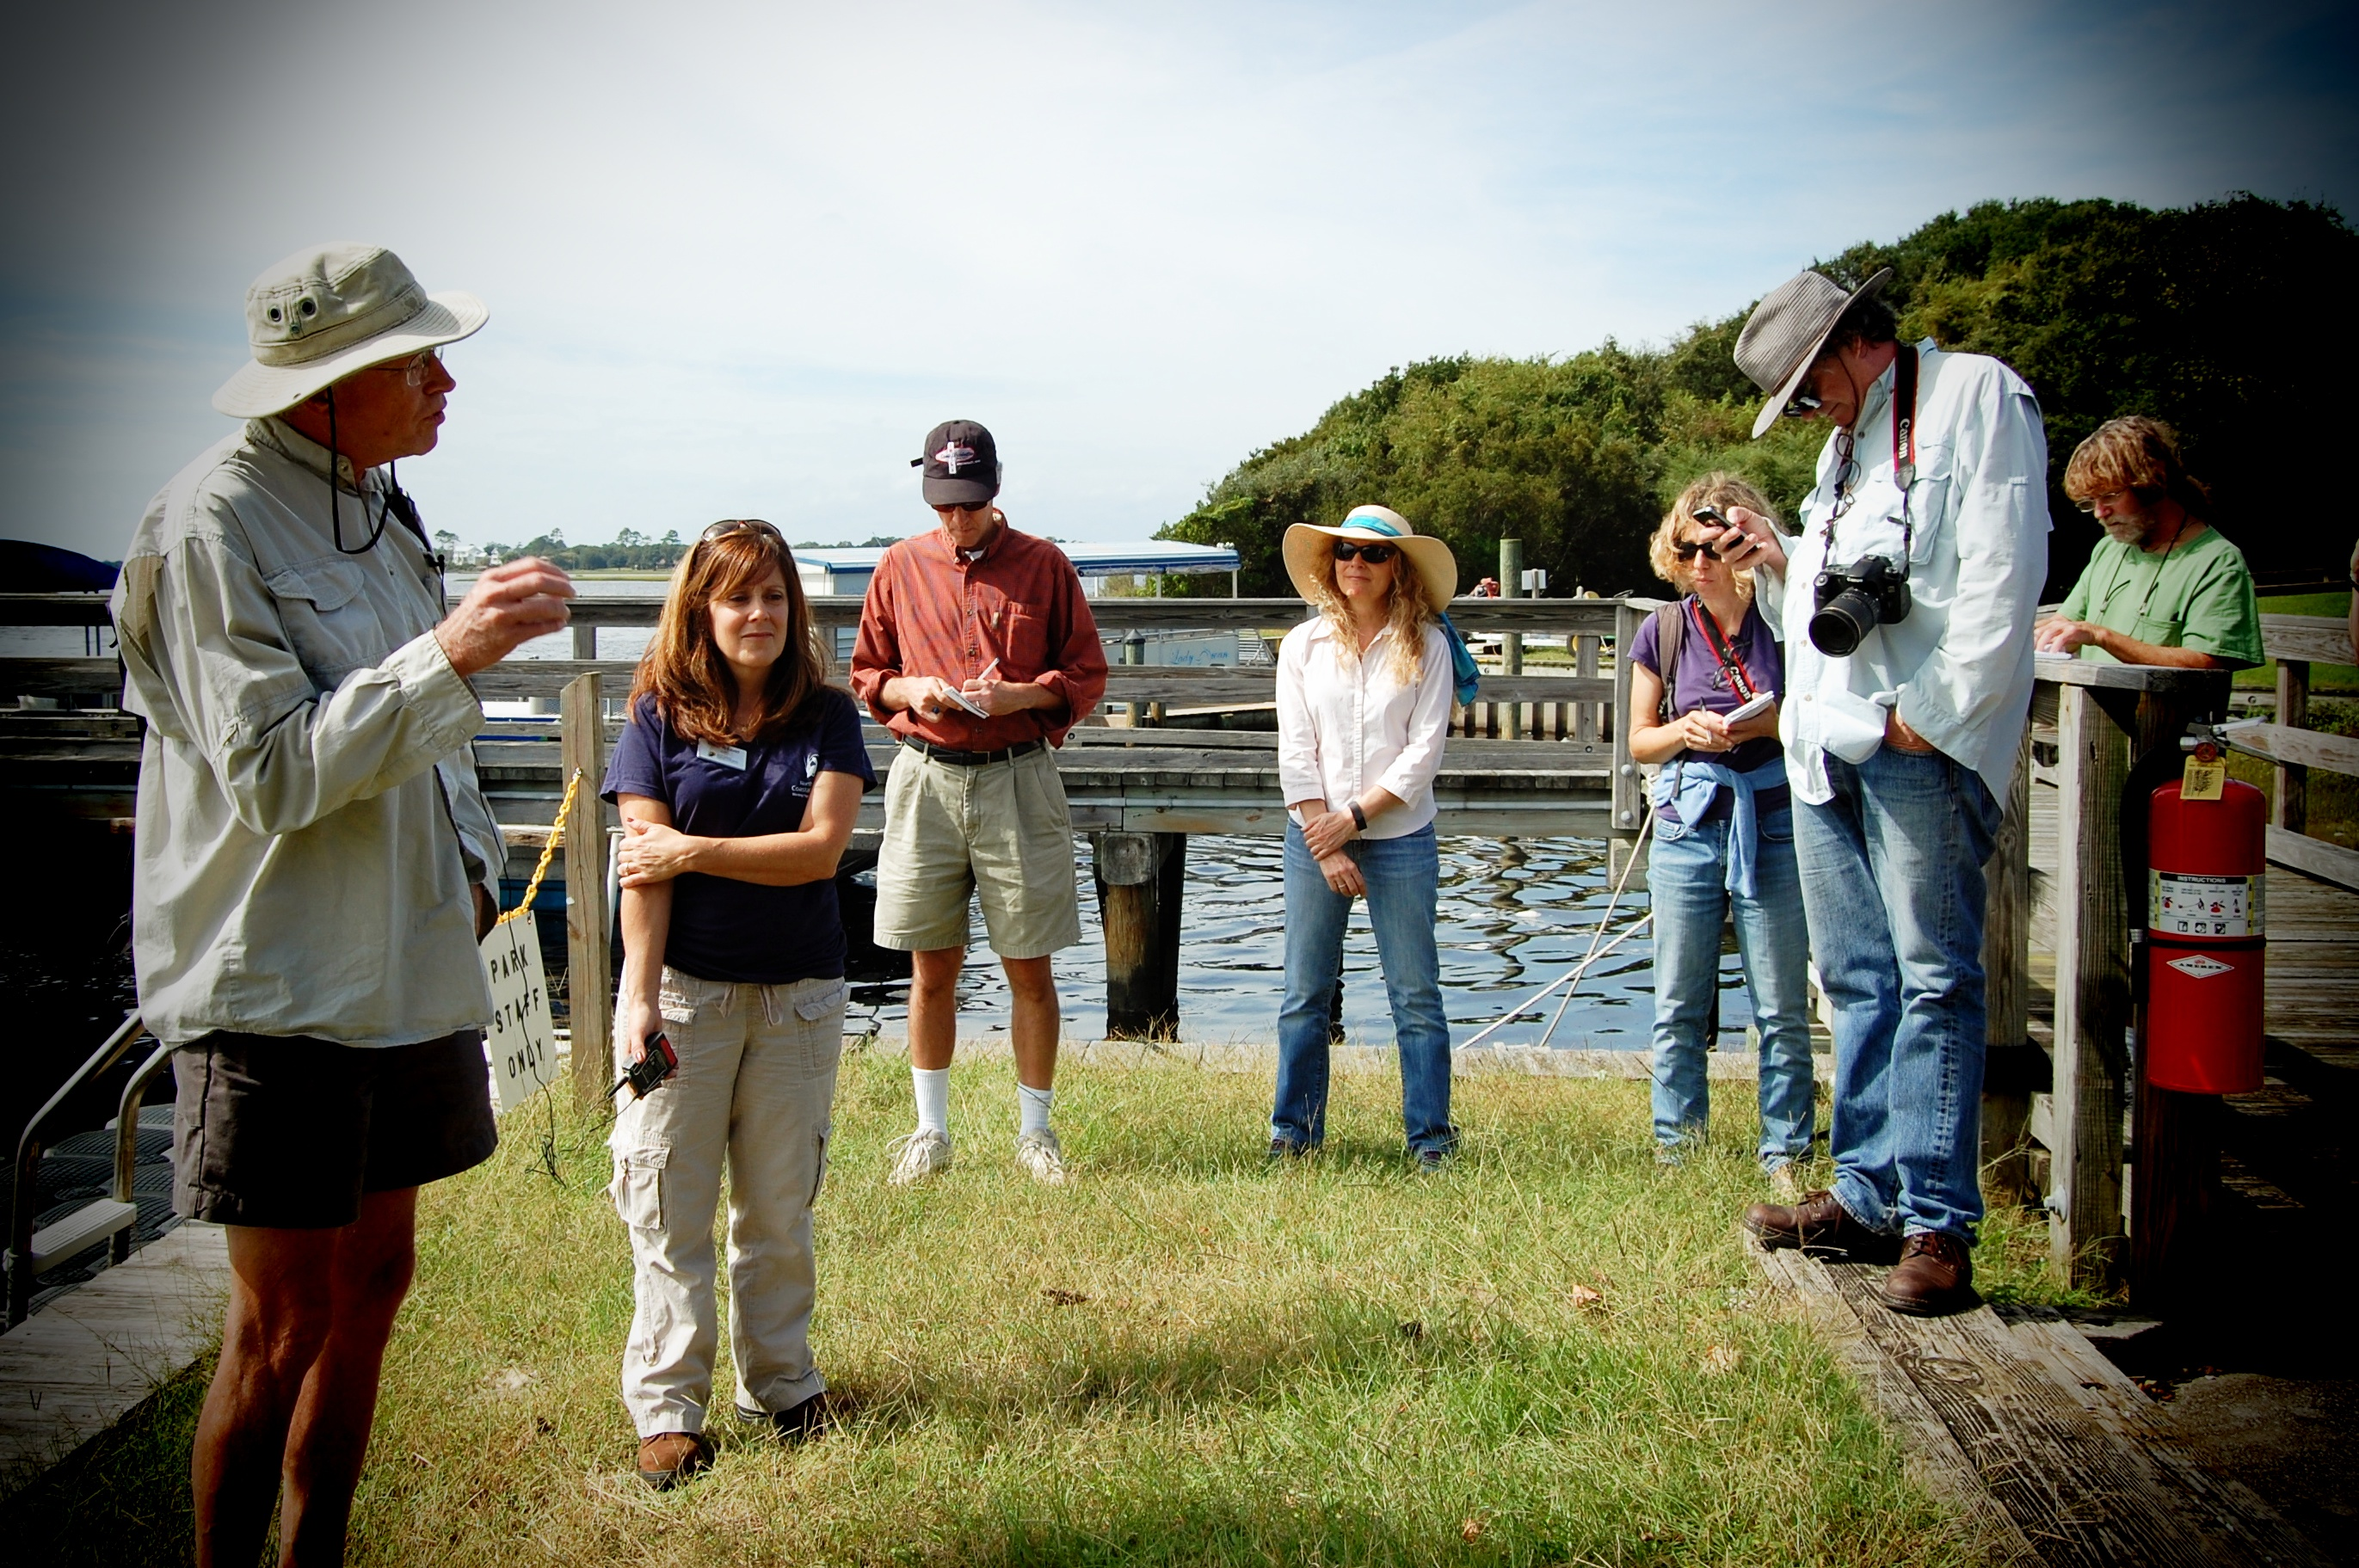 Pete Peterson talks to a group of people by the water in Beaufort